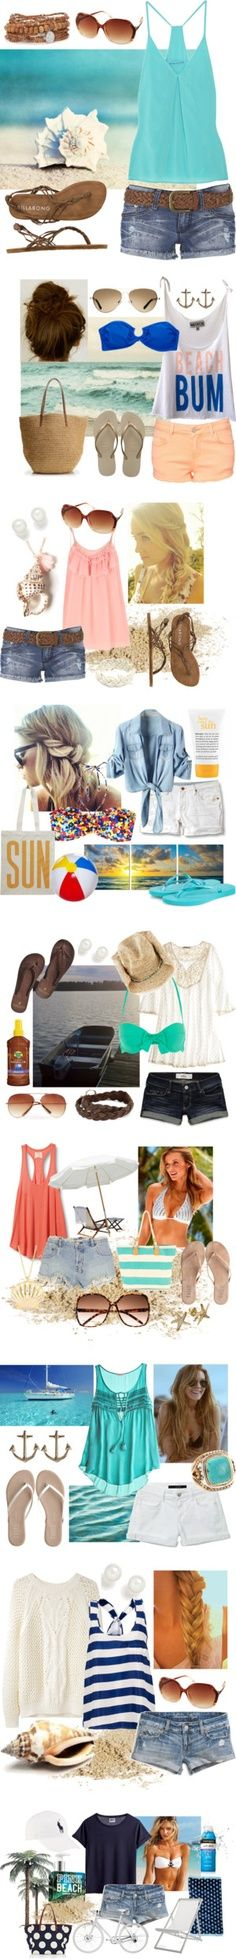 Outfits verano playa chicas